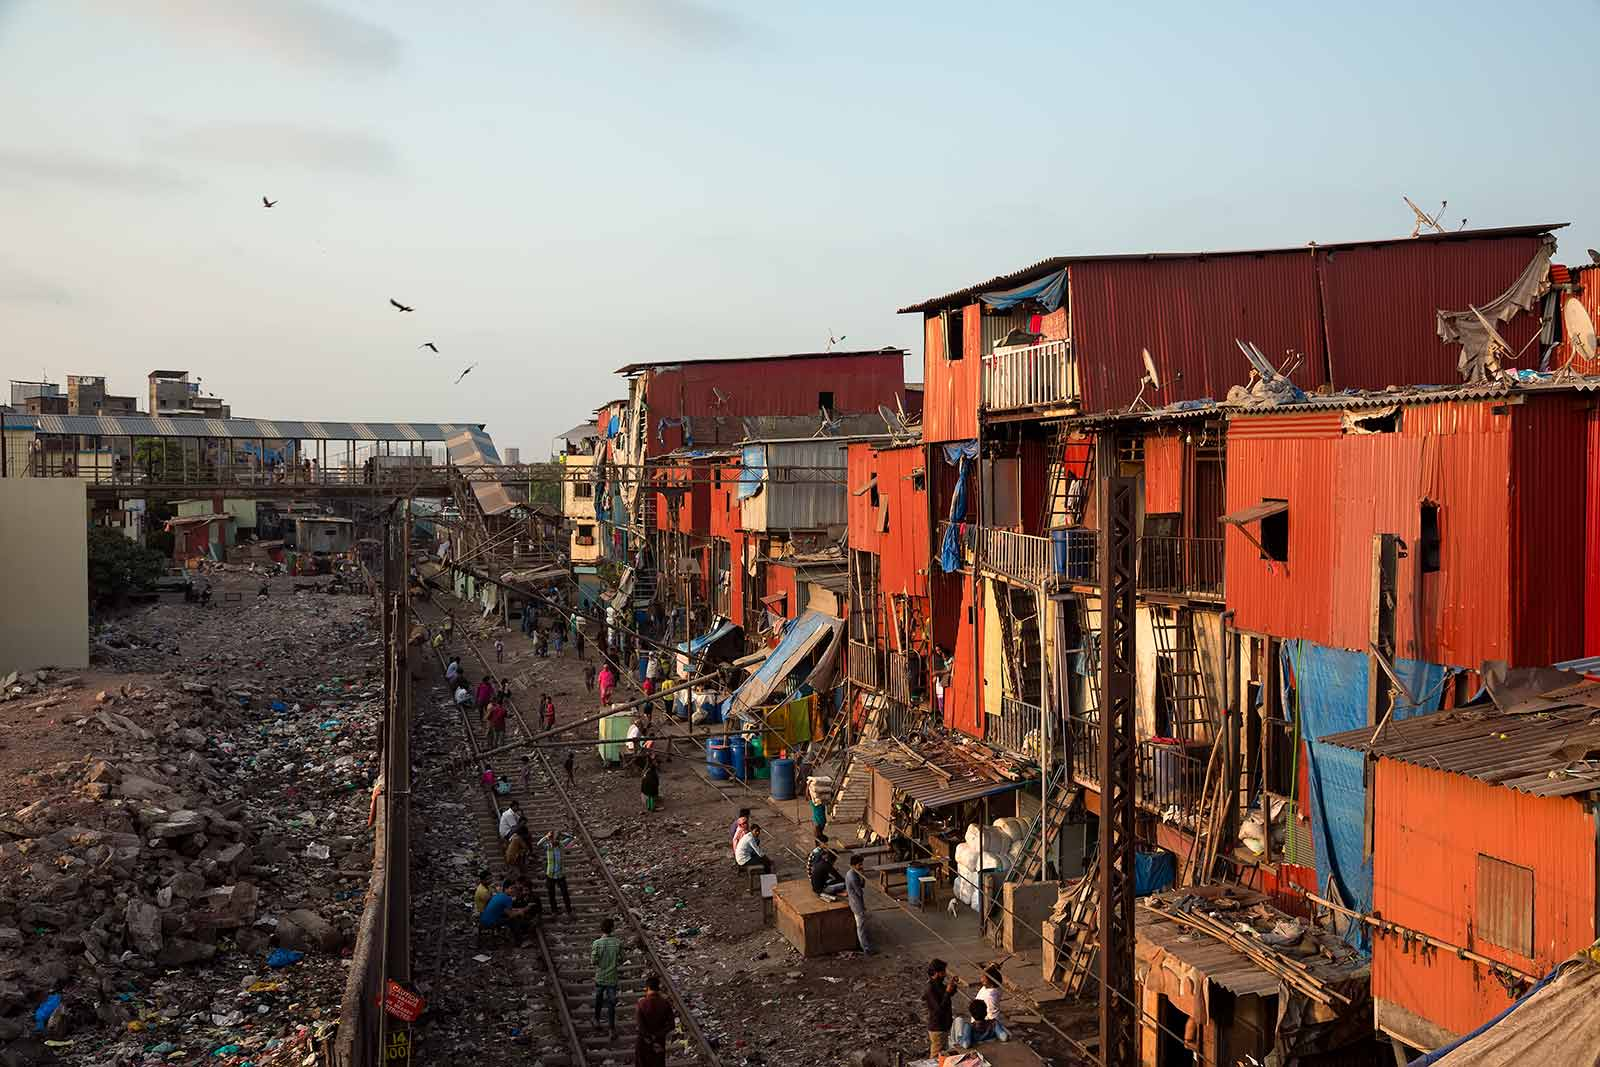 There are many slum areas in Mumbai, with Dharavi as Asia's largest. It is home to approximately 1 million people.